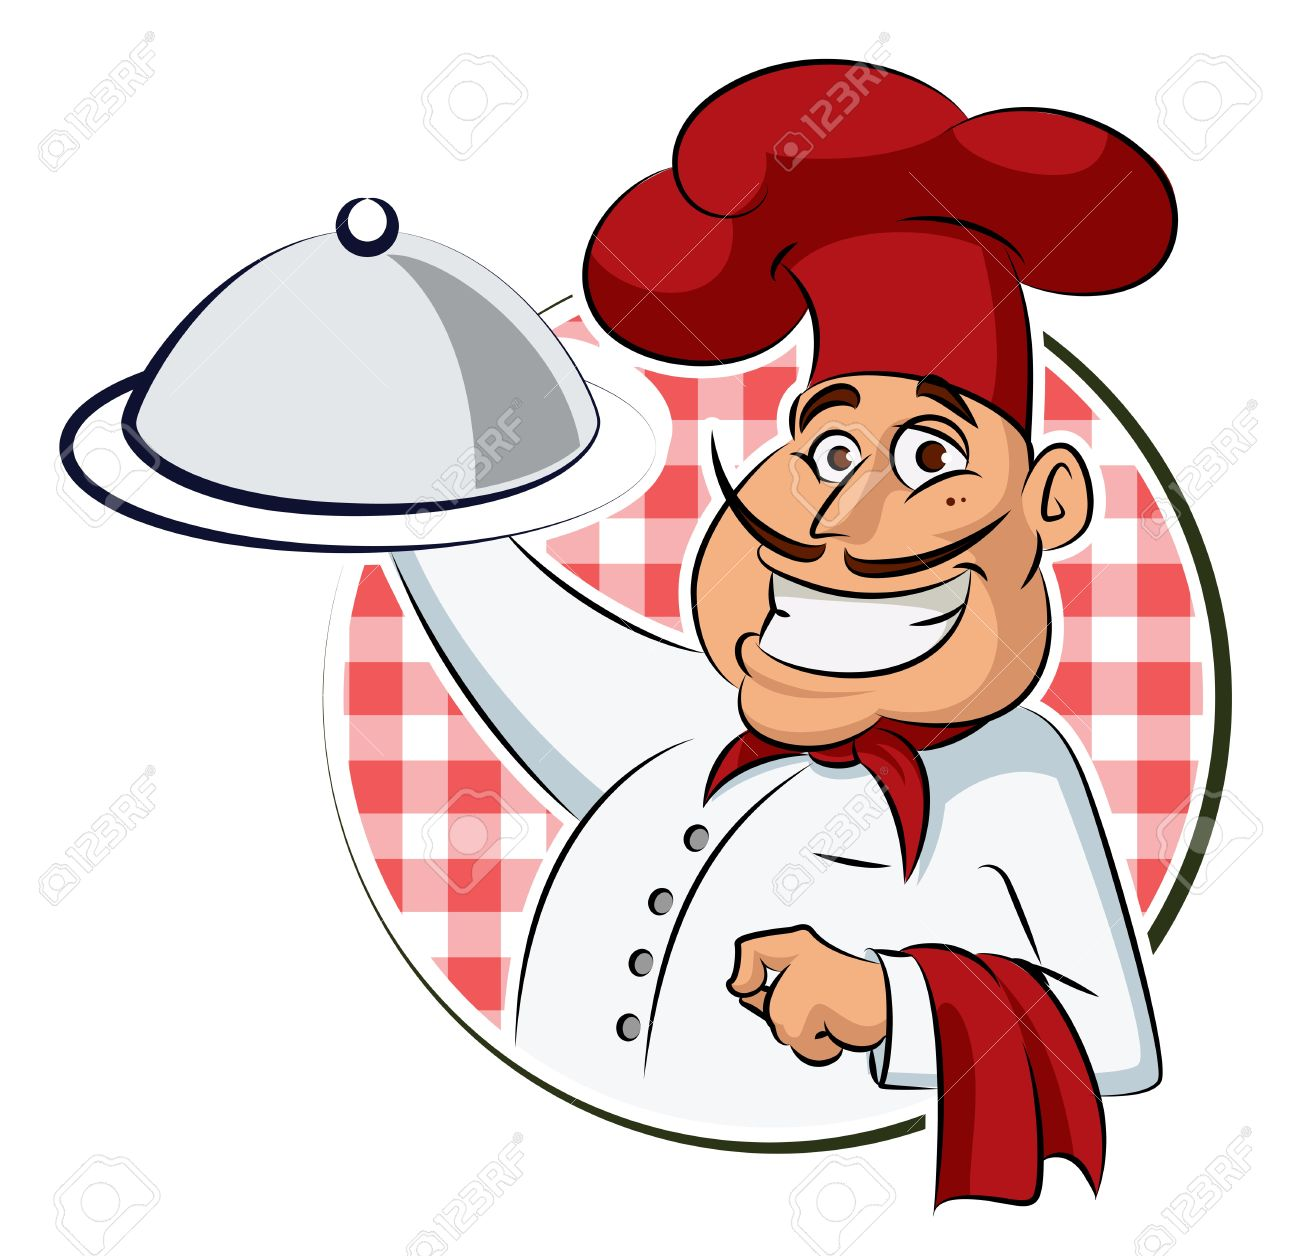 Woman cooking vector images amp pictures becuo - Apron Symbol Cook Restaurant Vector Illustration Isolated On A White Background Illustration